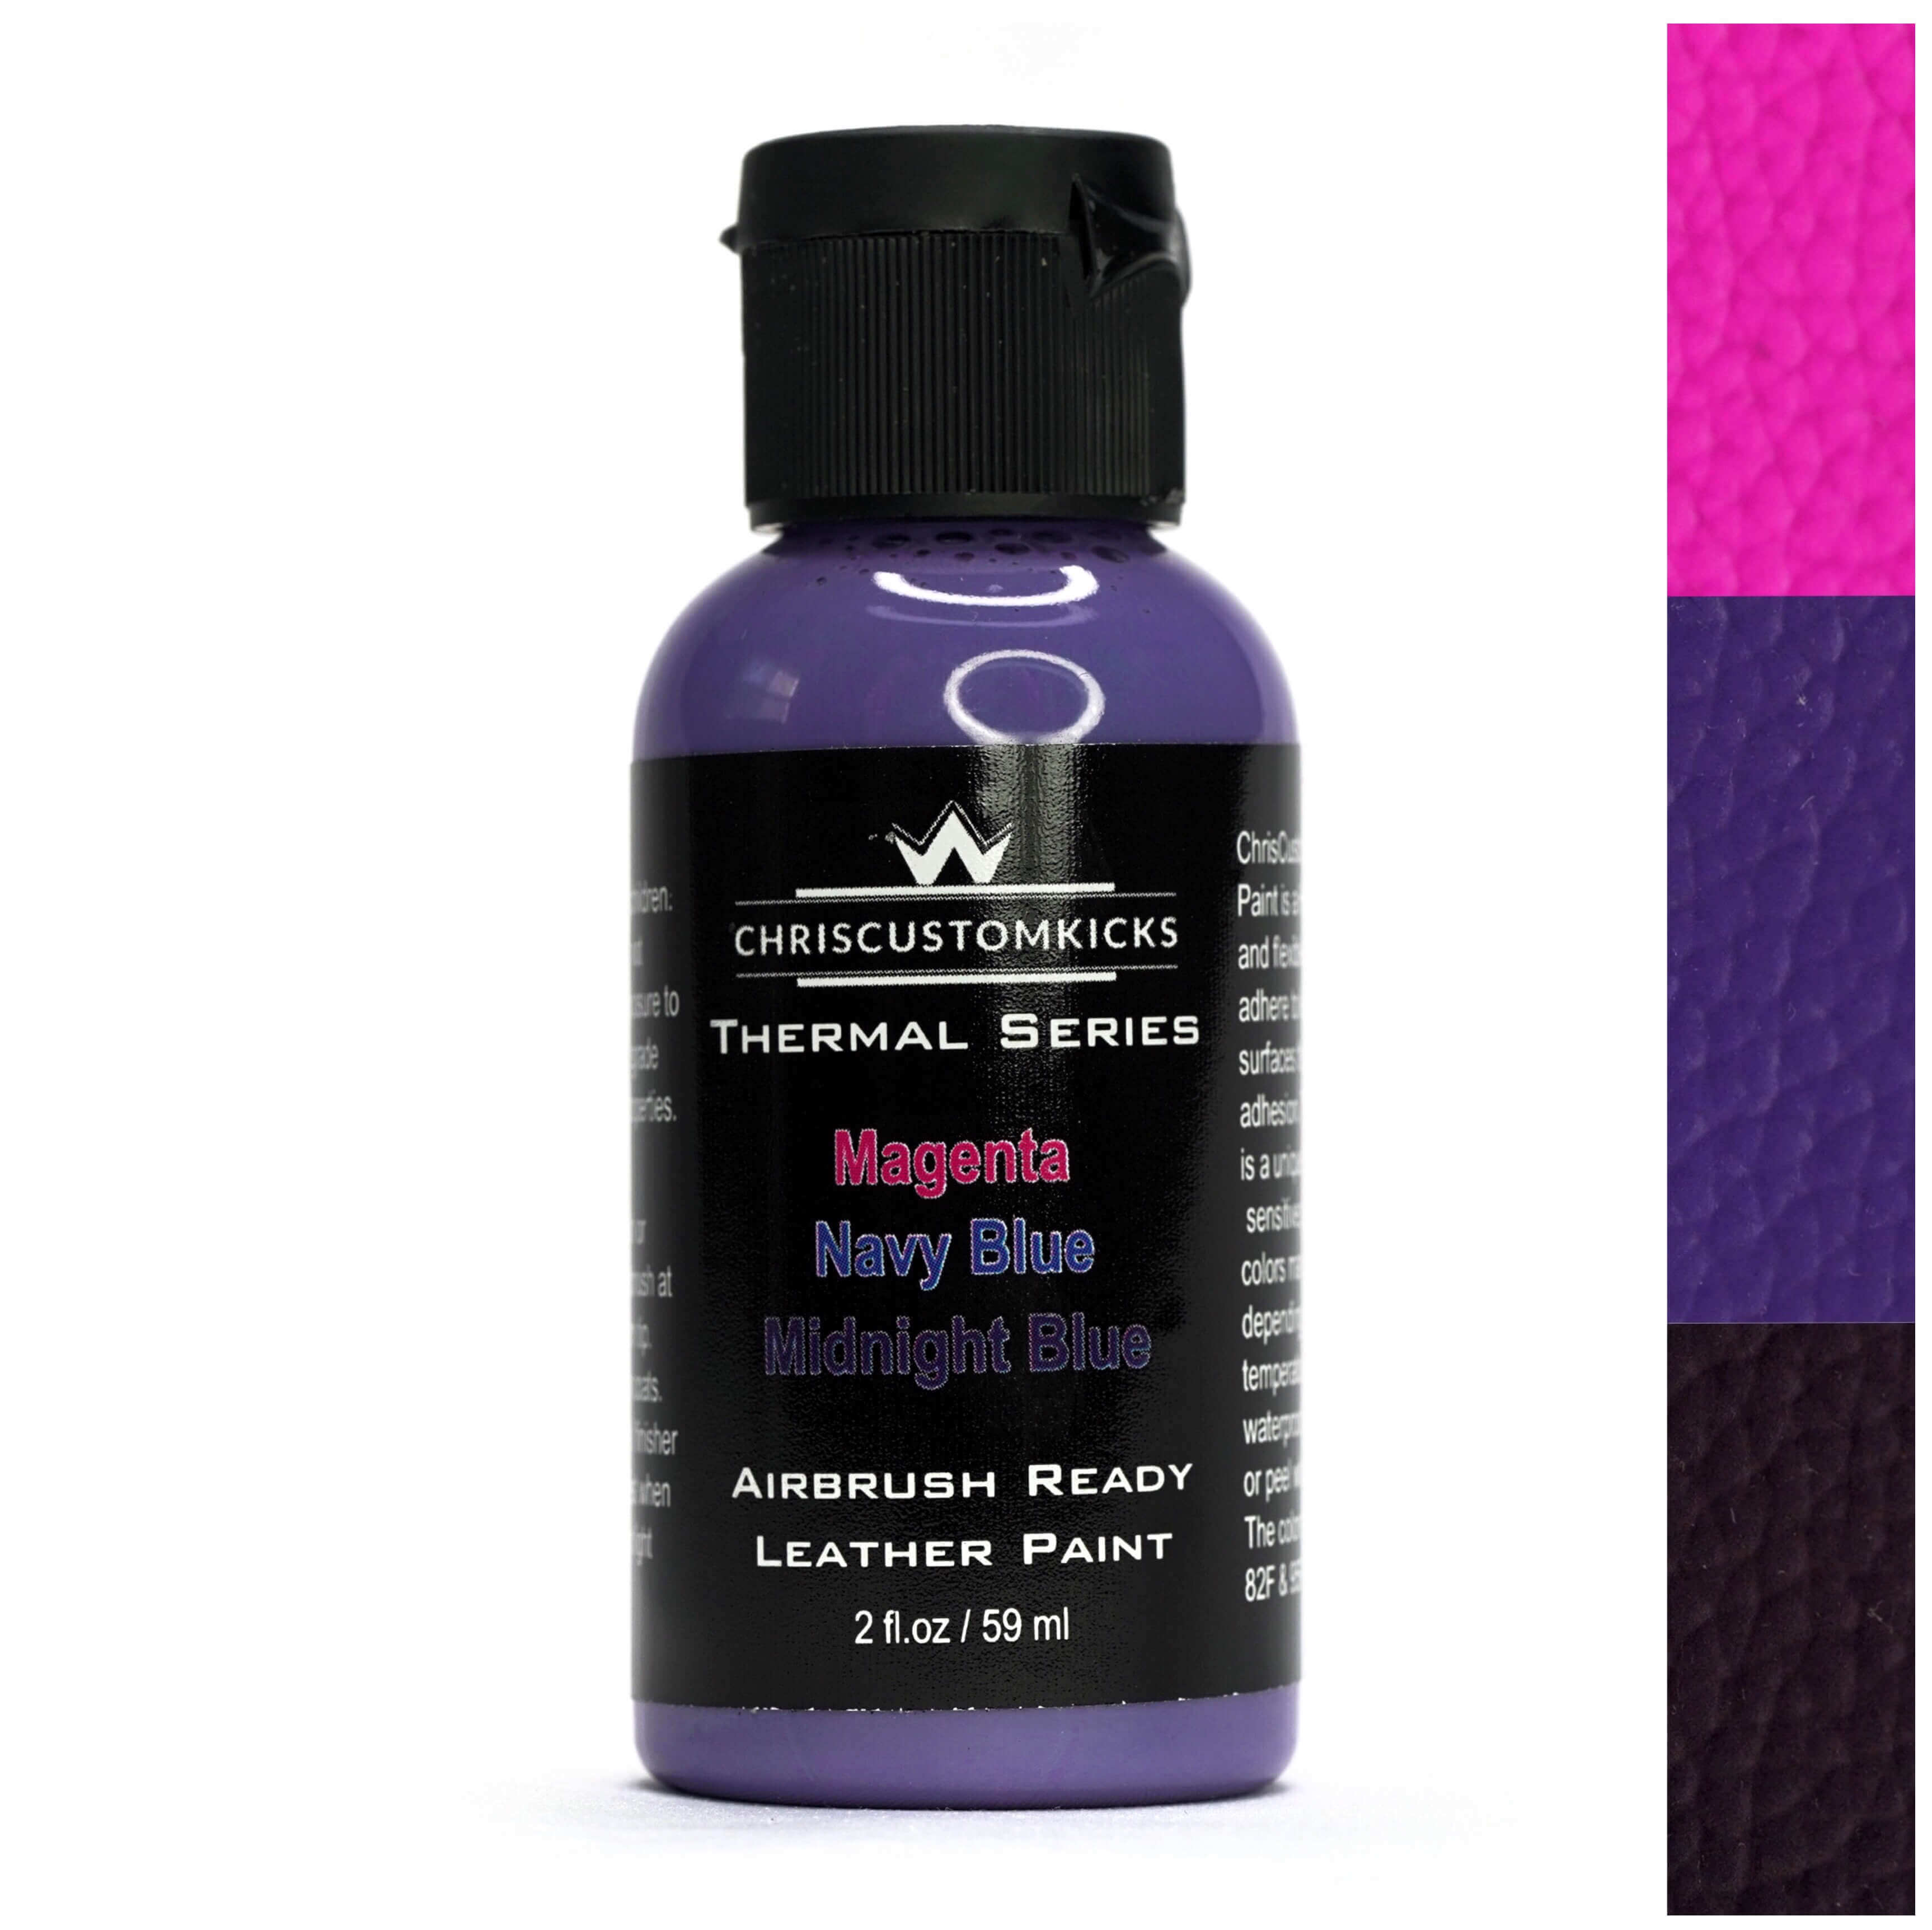 Triple Thermal Paint - Midnight Blue/Navy Blue/Magenta